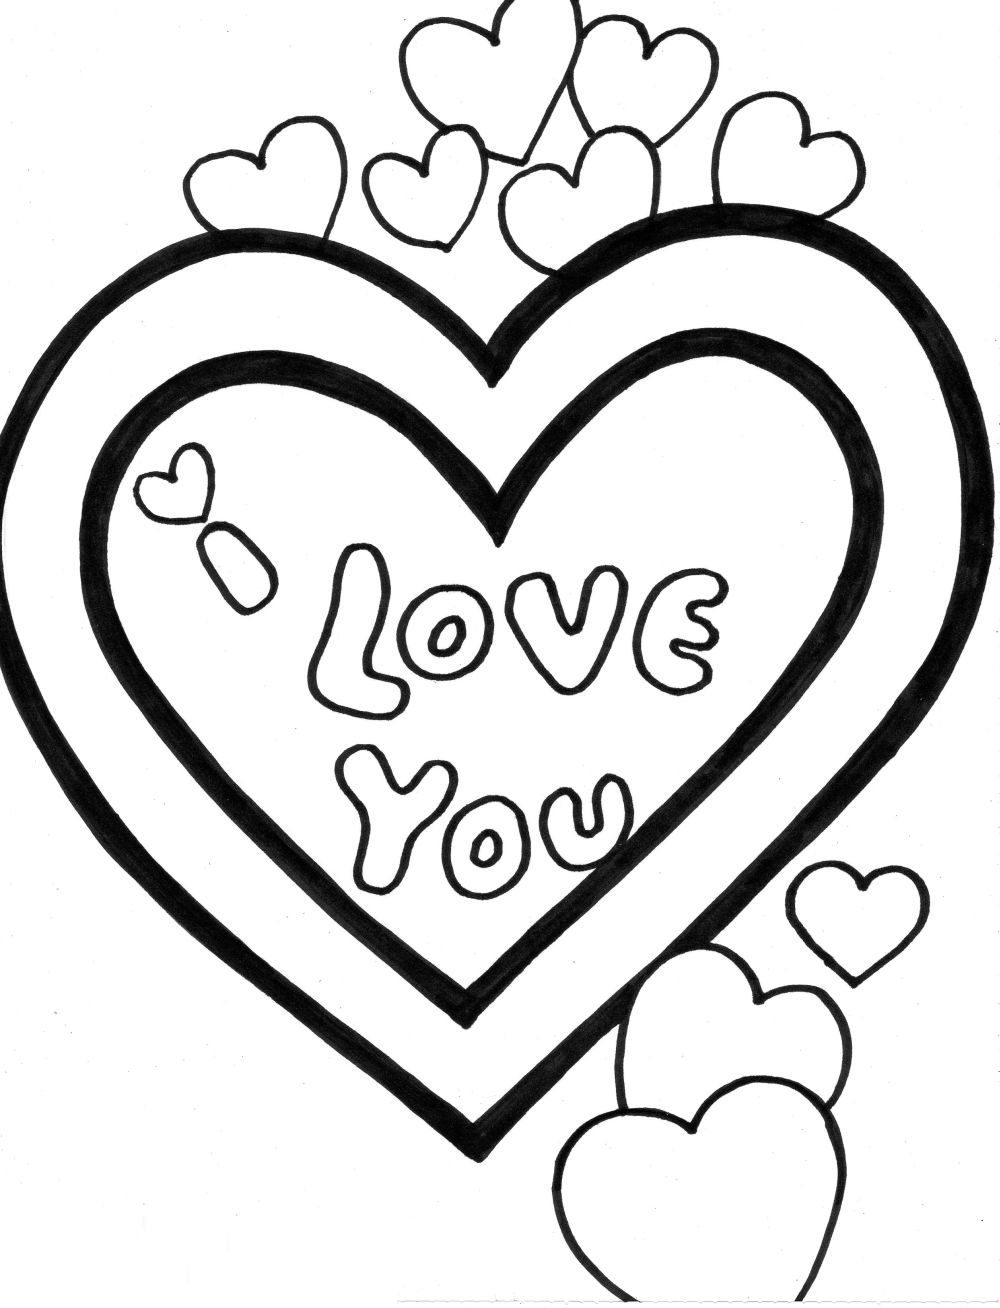 love you coloring pages quoti love you quot coloring pages you love coloring pages